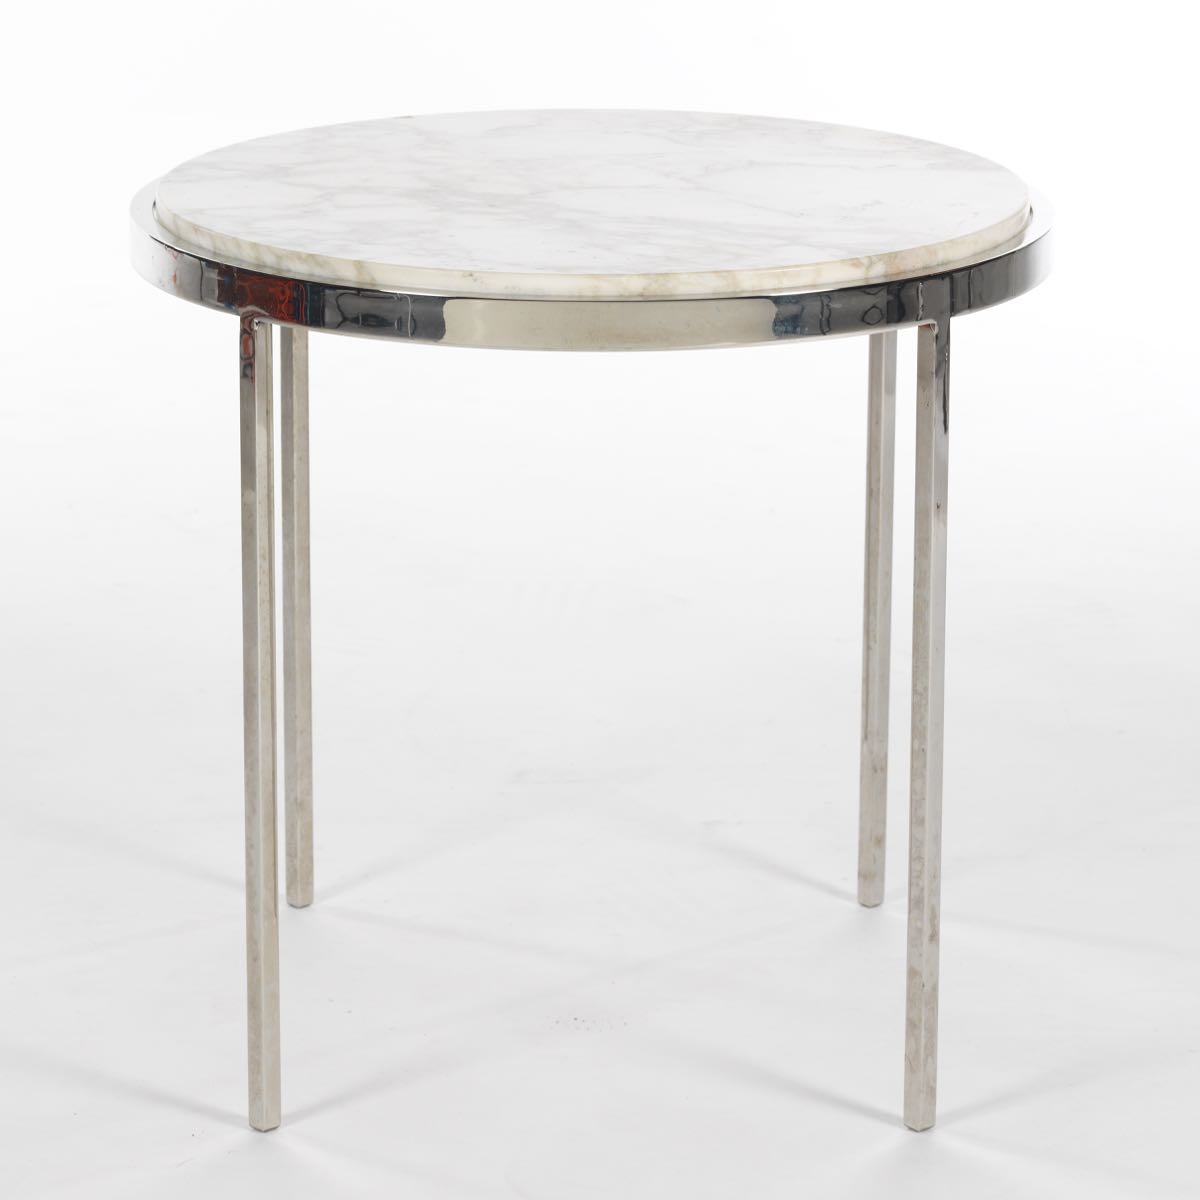 chrome metal accent table from monarch with base white polished marble top kohls dining chairs weathered teak coffee pier one wicker chair ifrane end round industrial high grey